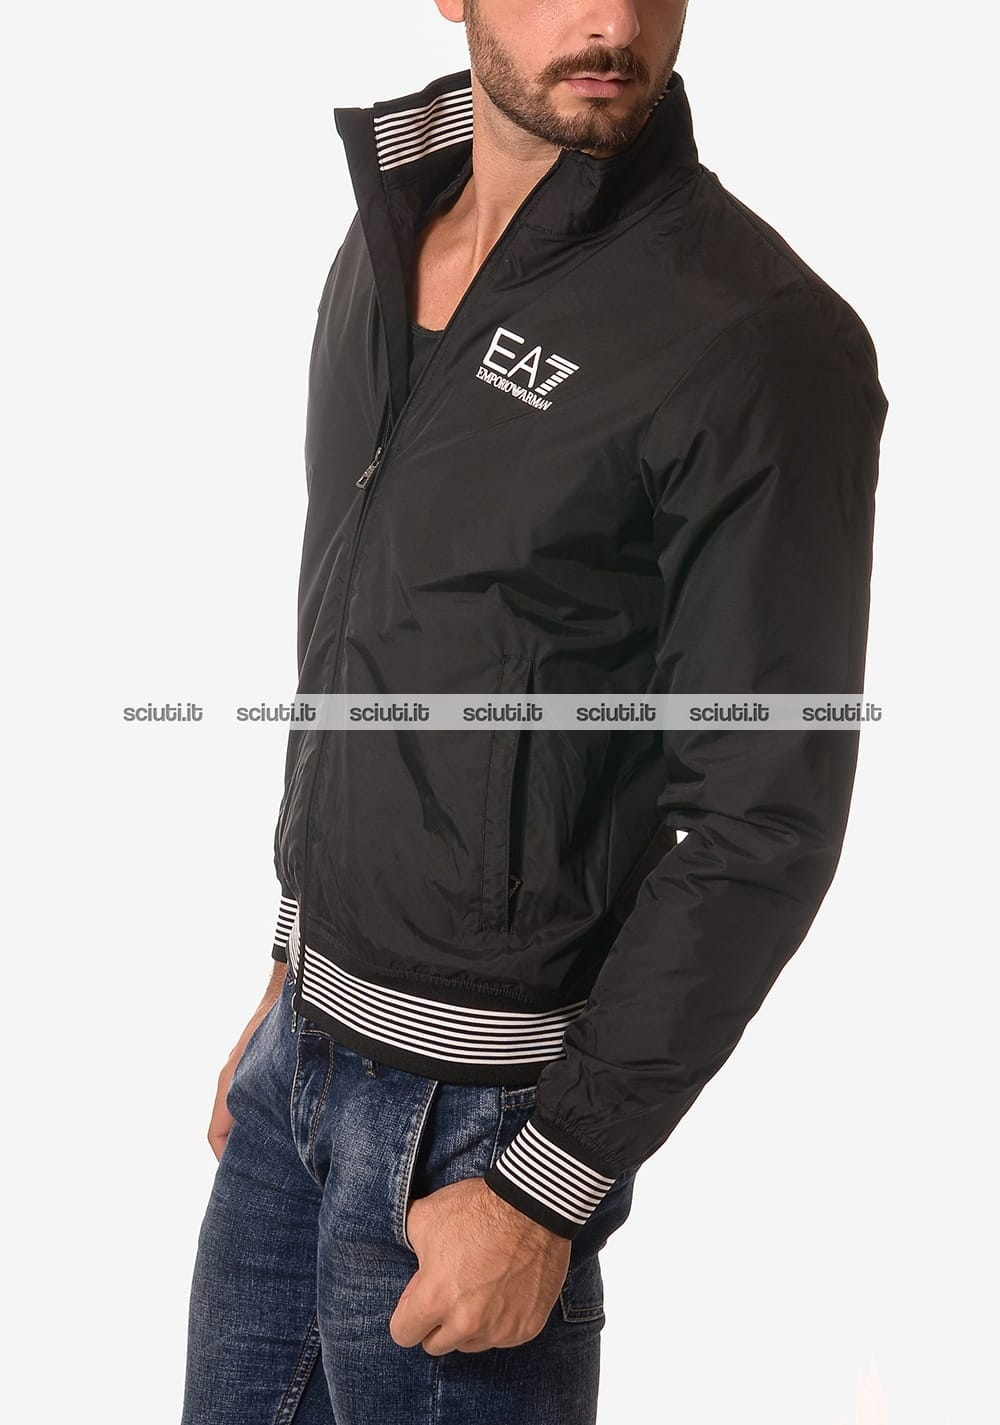 low priced d16a2 e1acb Giubbotto bomber Emporio Armani uomo bordi rigati nero ...